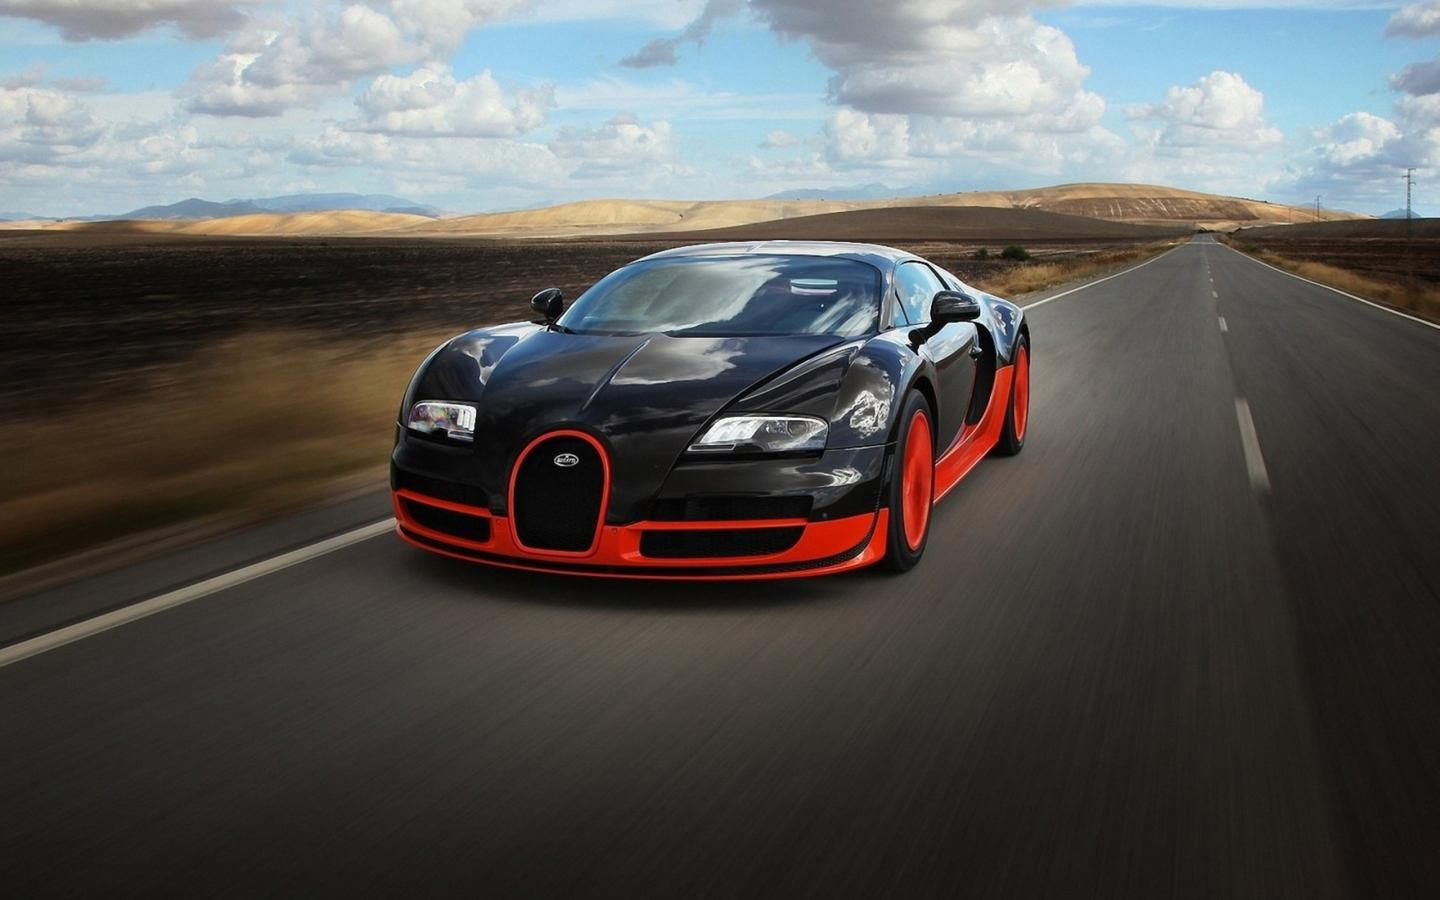 Bugatti Veyron Wallpaper HD For Laptop 53